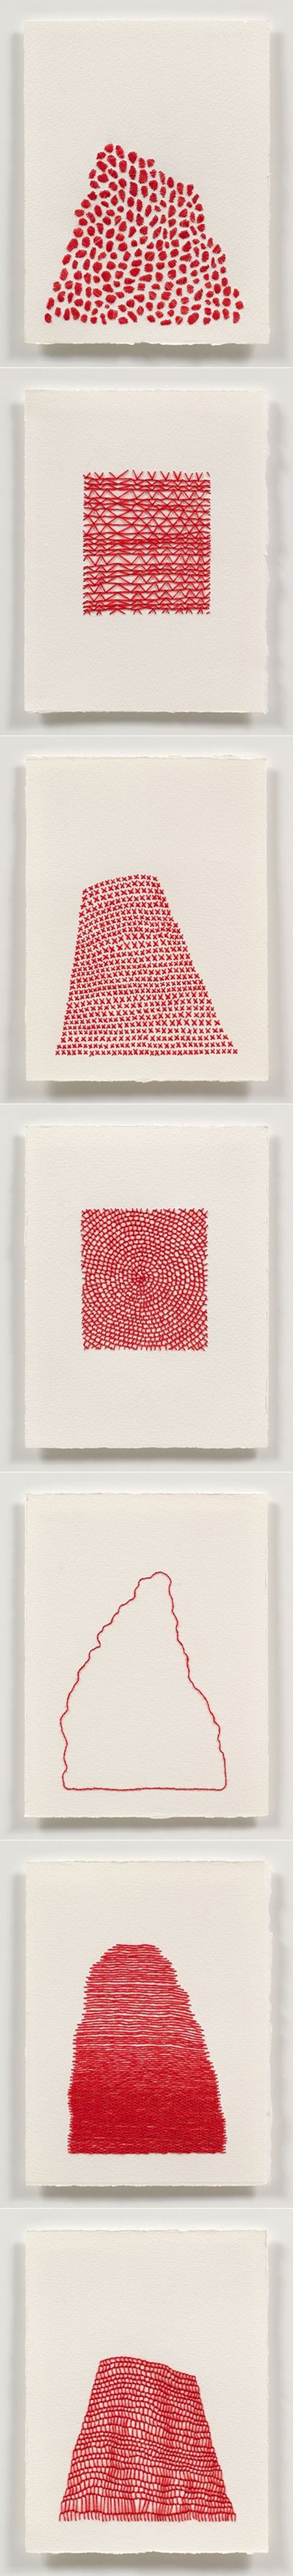 Emily barletta embroidery on paper red